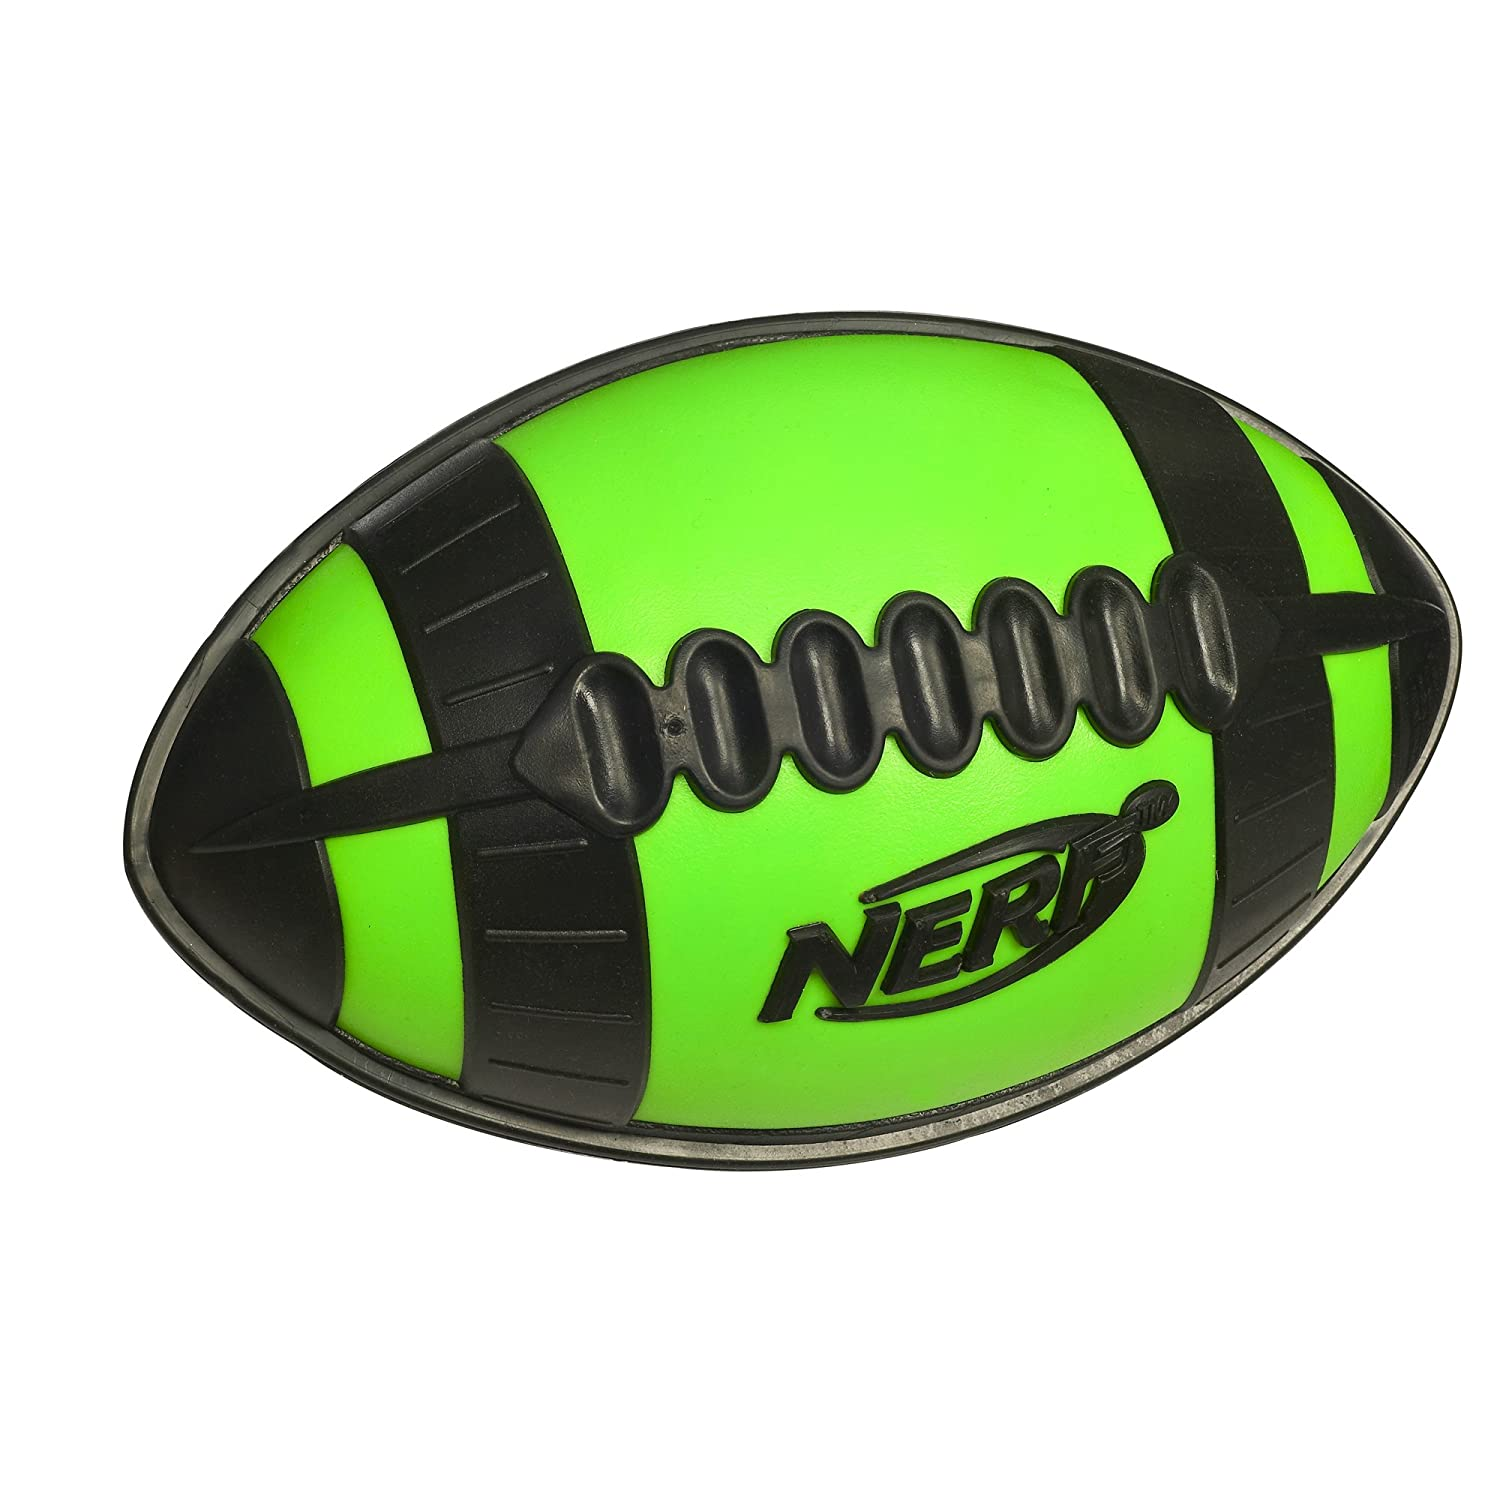 NERF - N SPORTS - Weather Blitz - All-Conditions Youth FOOTBALL - Allwetter Junior Football - grün/schwarz ca. 25cm